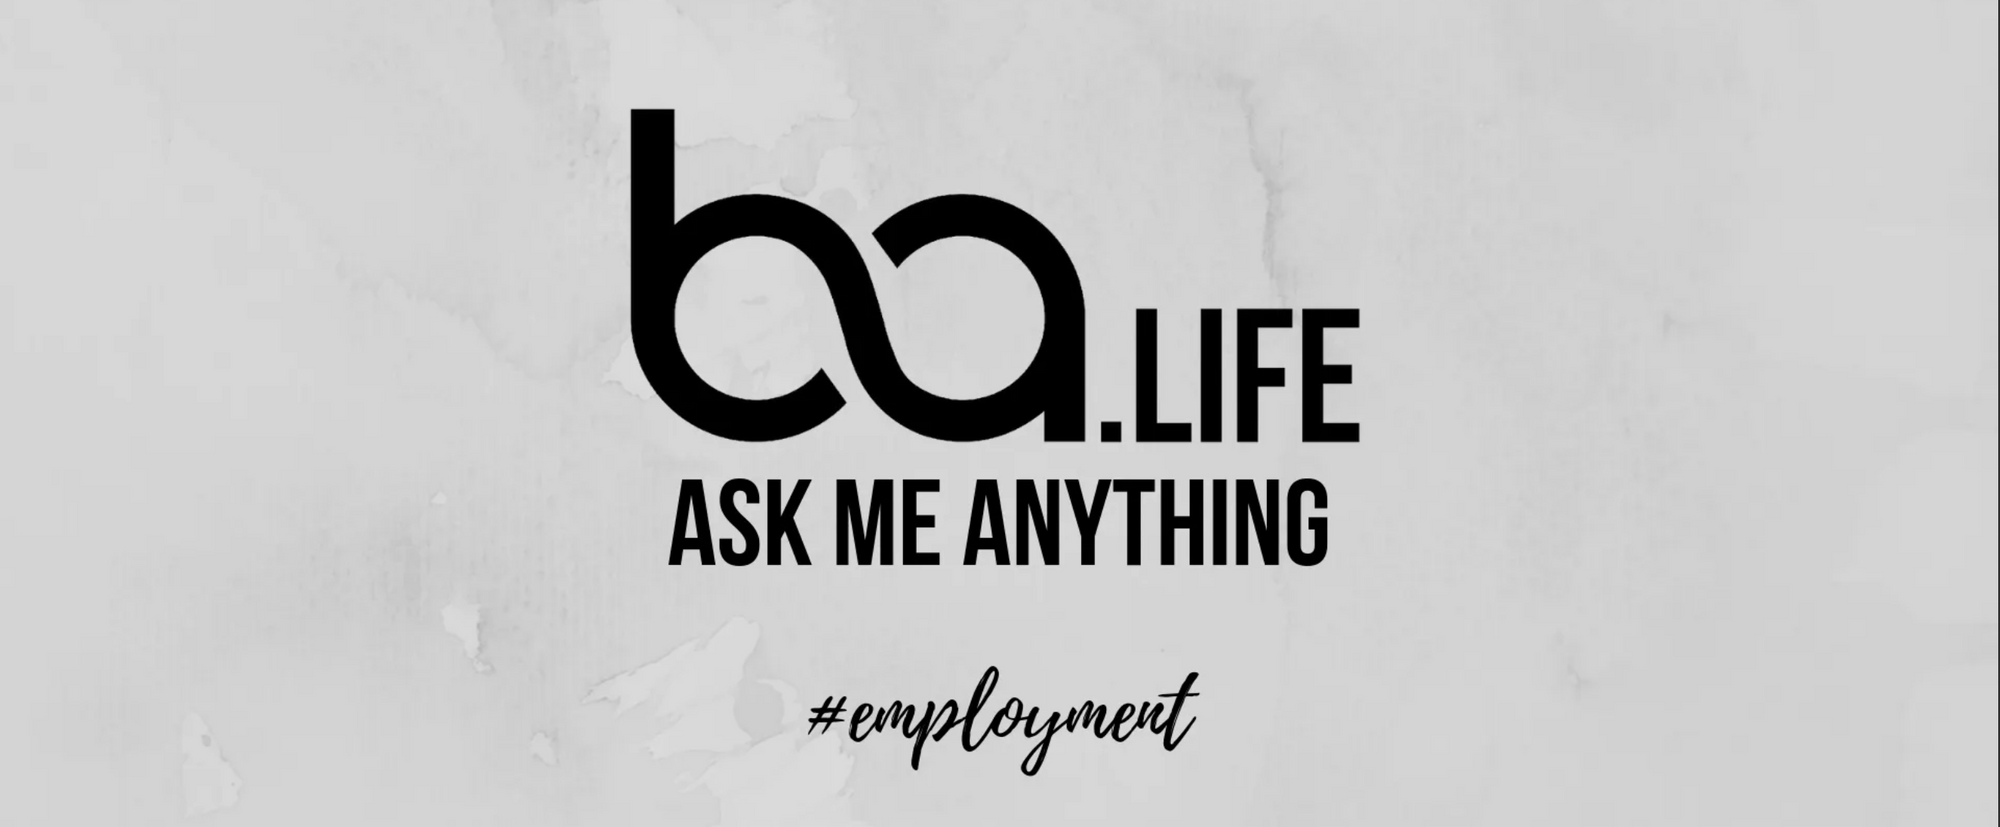 BA Ask Me Anything #employment